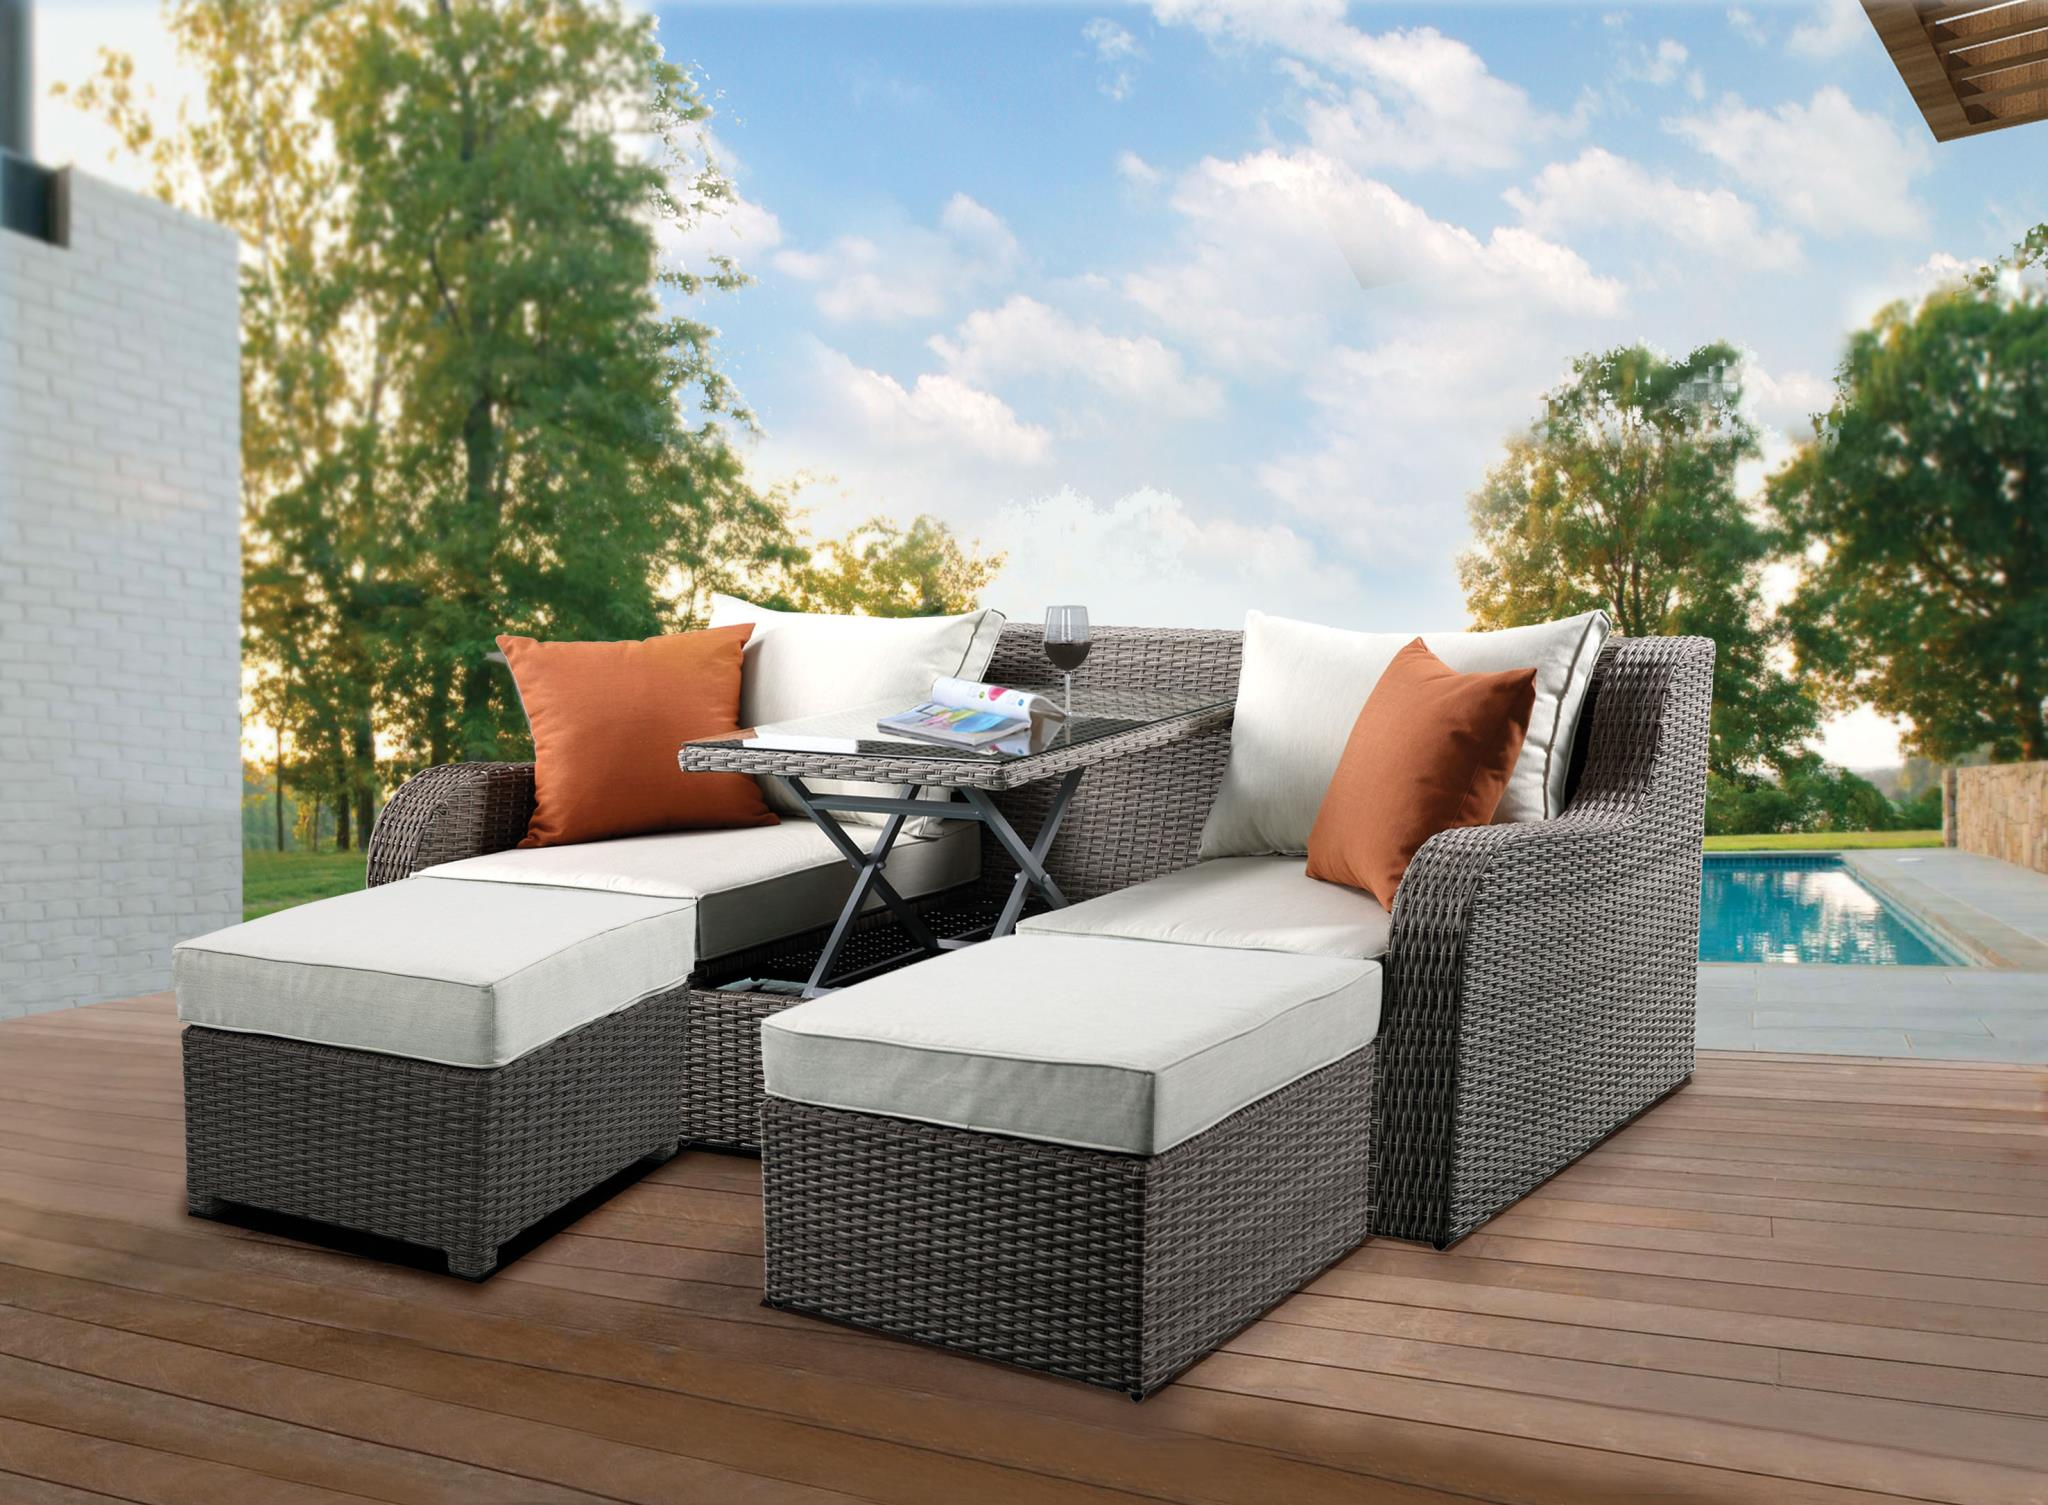 Salena Convertible Outdoor Sofa Bed With Lift Top Coffee Table